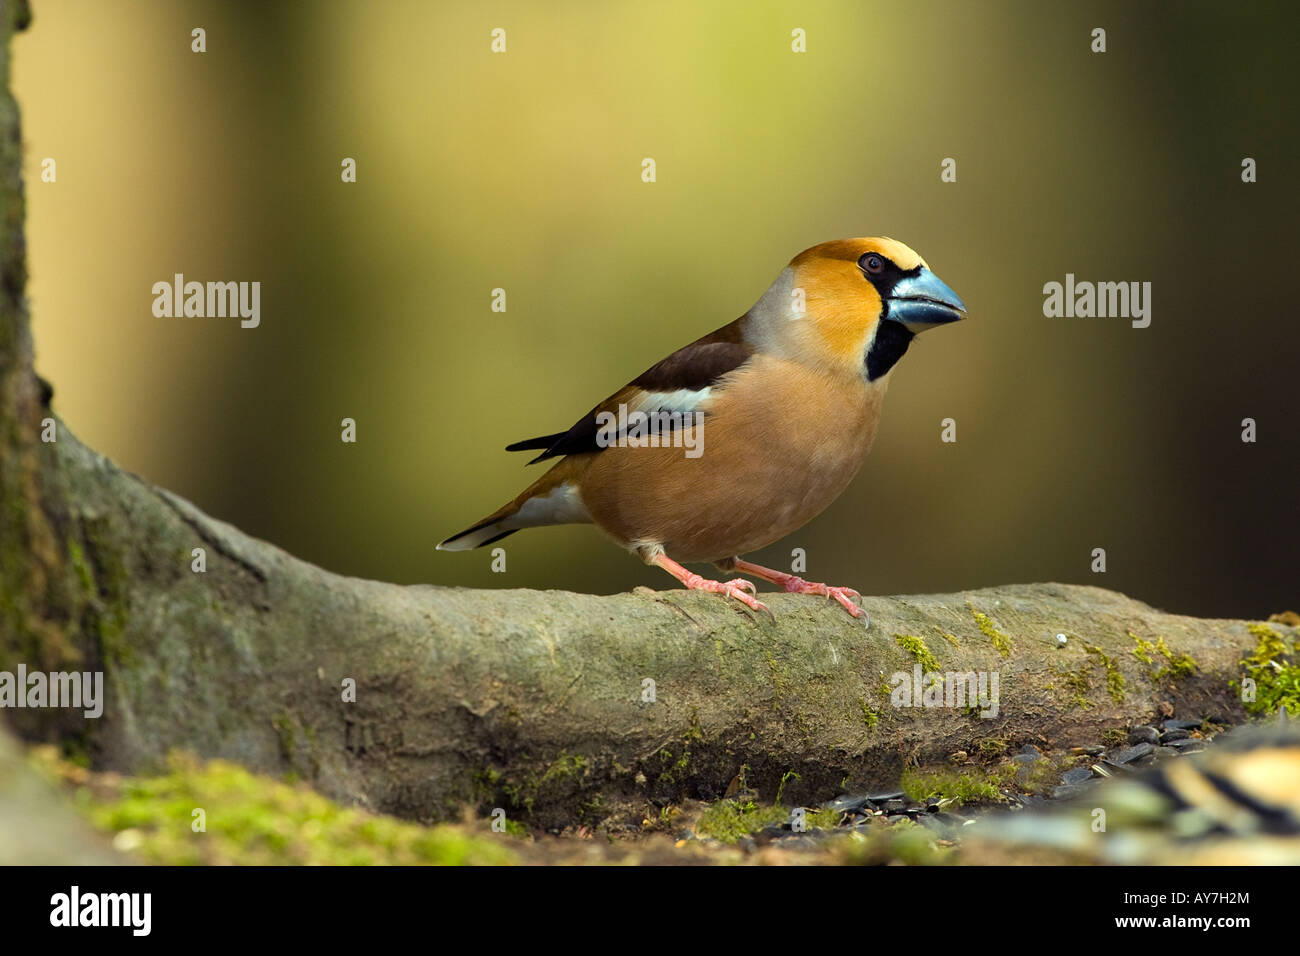 HAWFINCH Coccothraustes coccothraustes - Stock Image